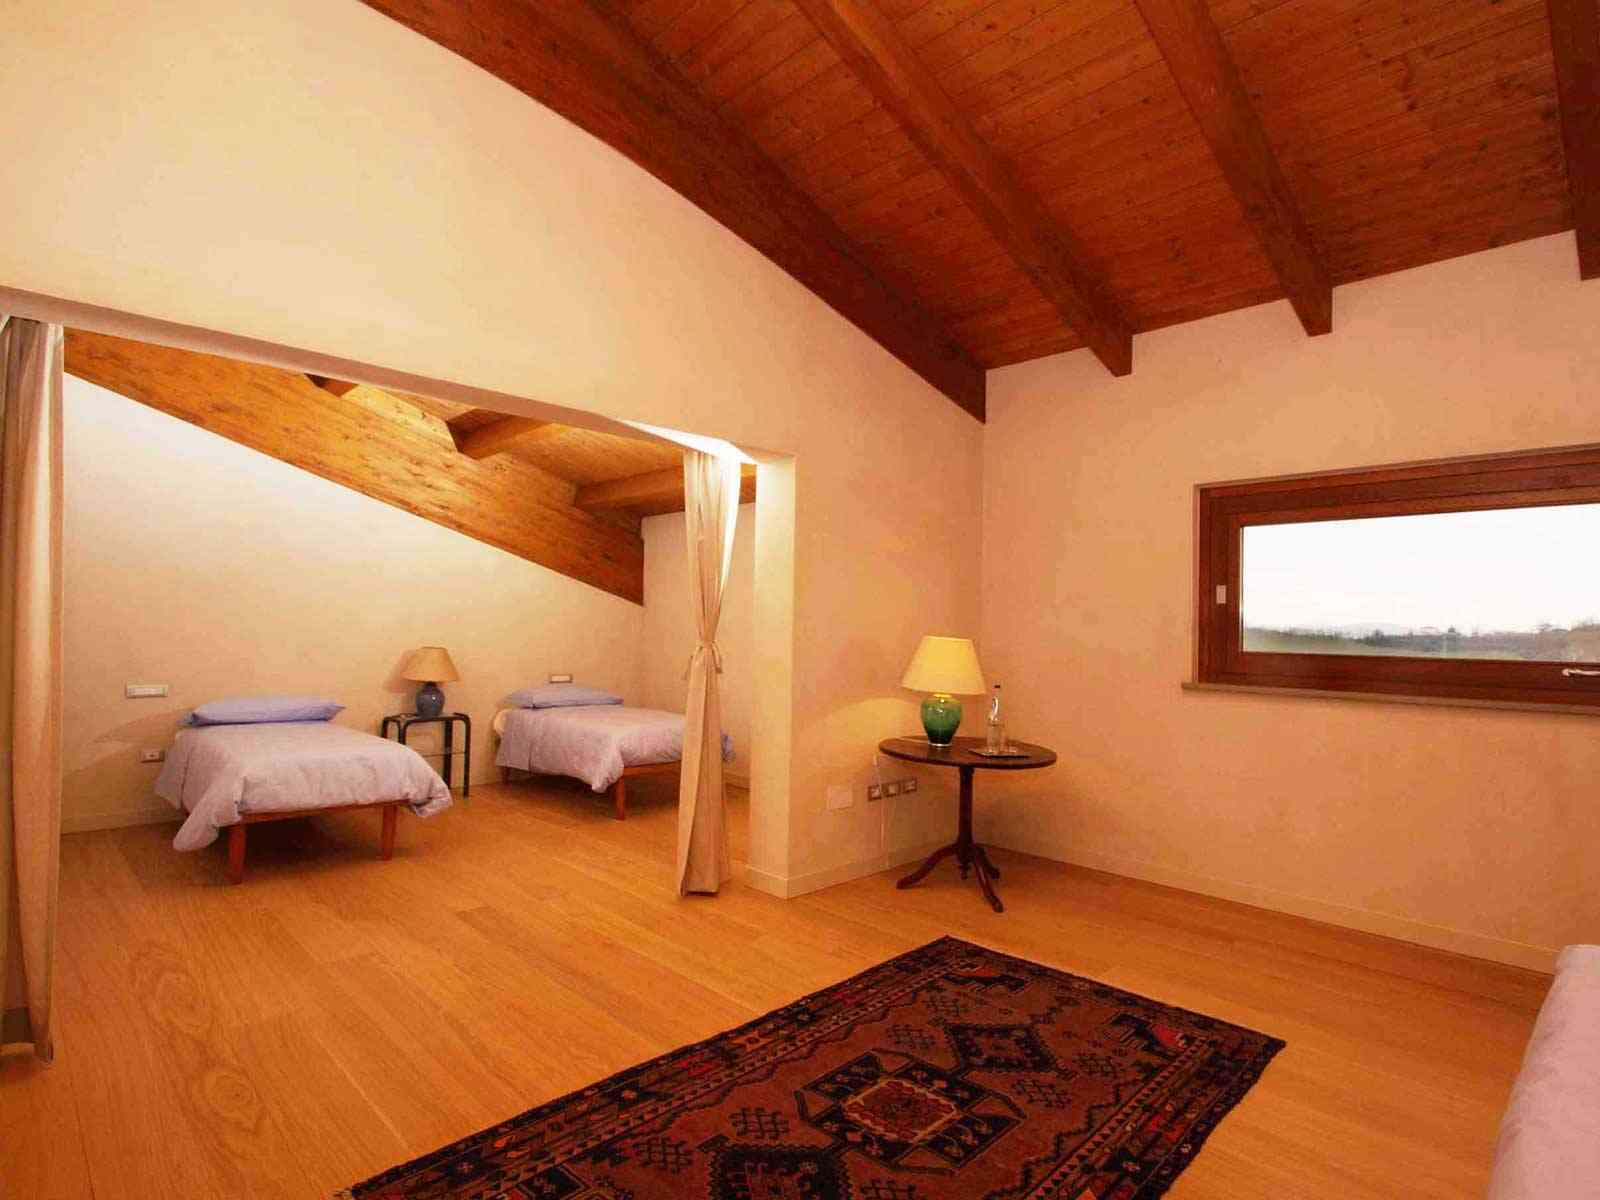 Country Houses Country Houses for sale Penne (PE), Casa Cignale - Penne - EUR 0 120